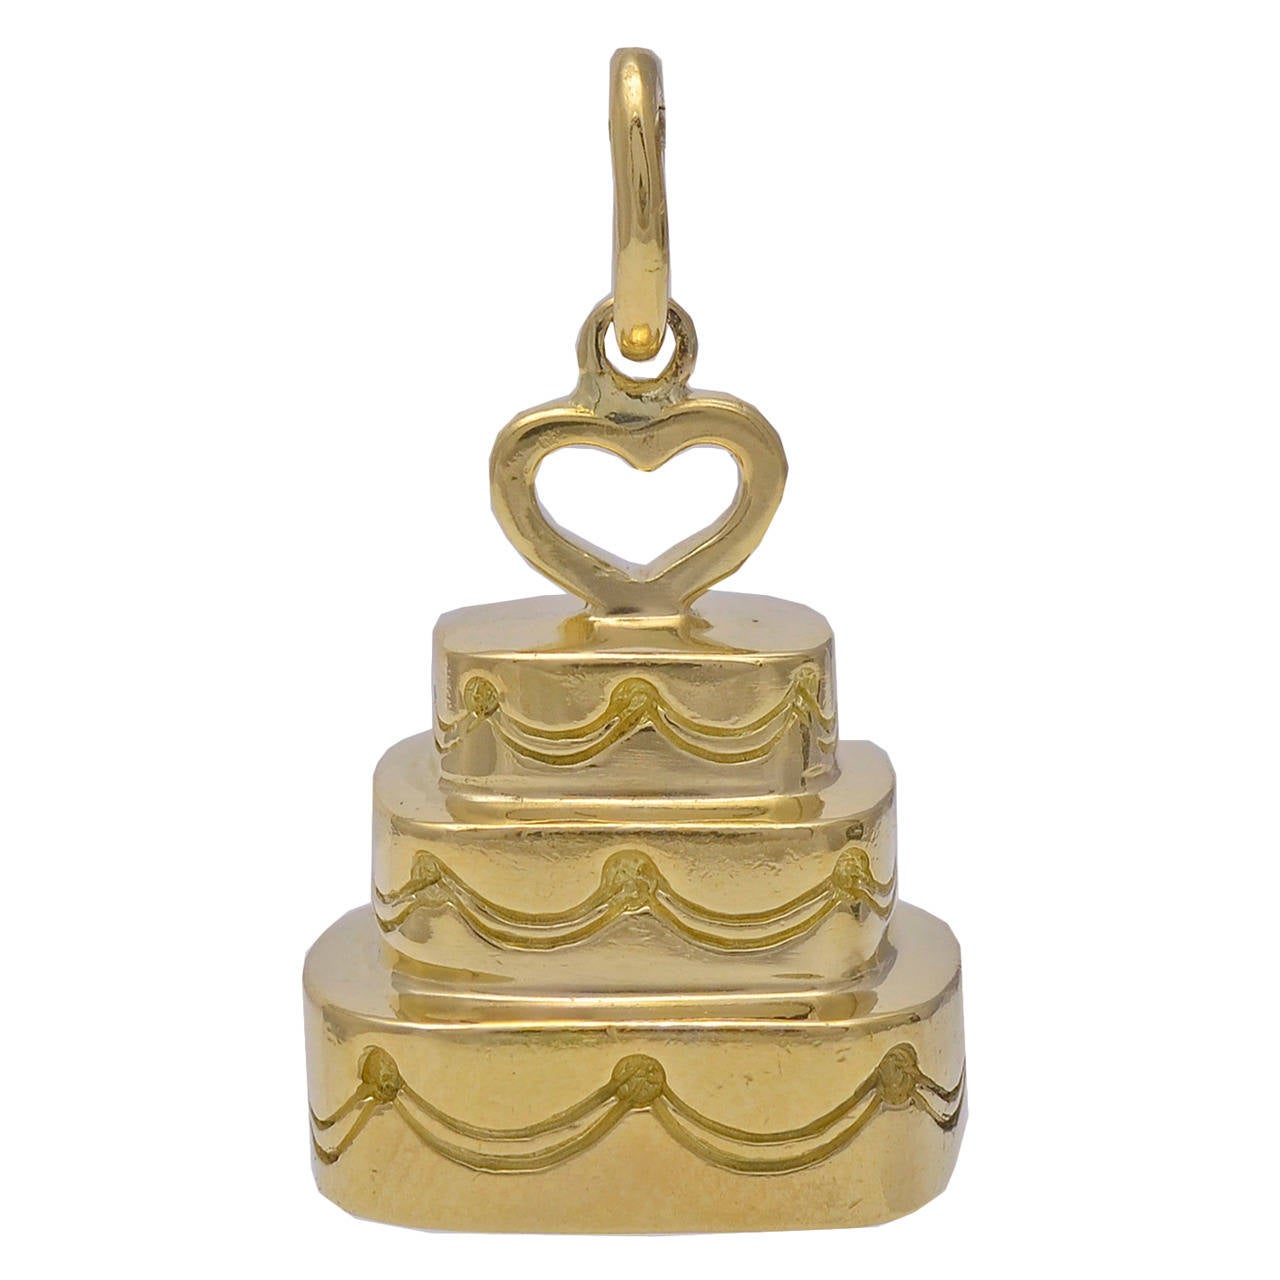 Tiffany & Co. Gold Wedding Cake Charm For Sale